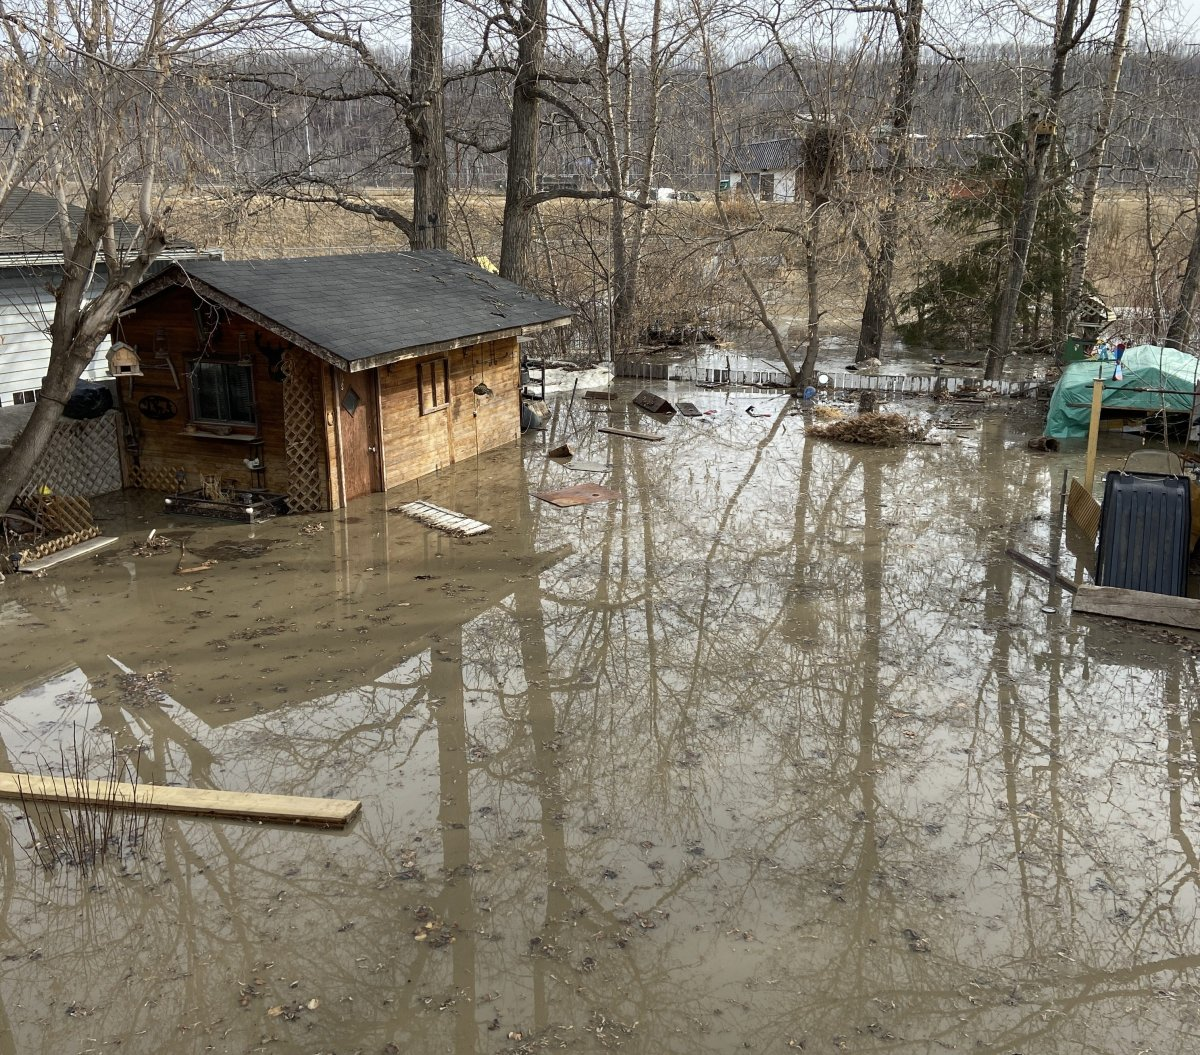 Hannah Walowski, 18, is a Fort McMurray resident dealing with flooding. Her backyard is pictured on Monday, April 27, 2020.